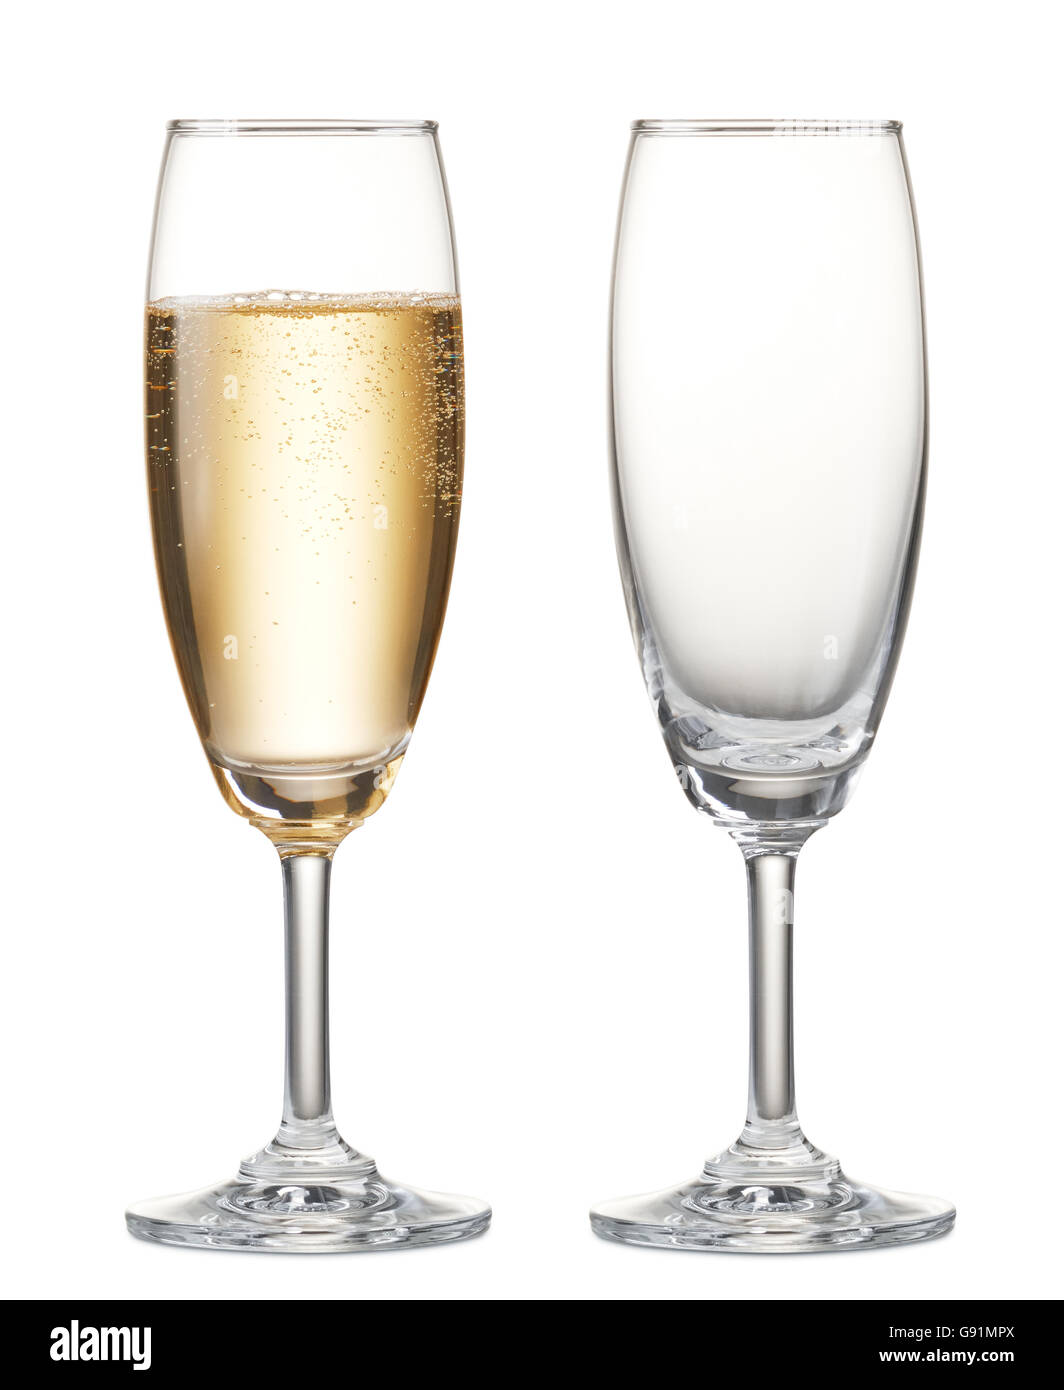 glass of champagne and empty champagne flute - Stock Image